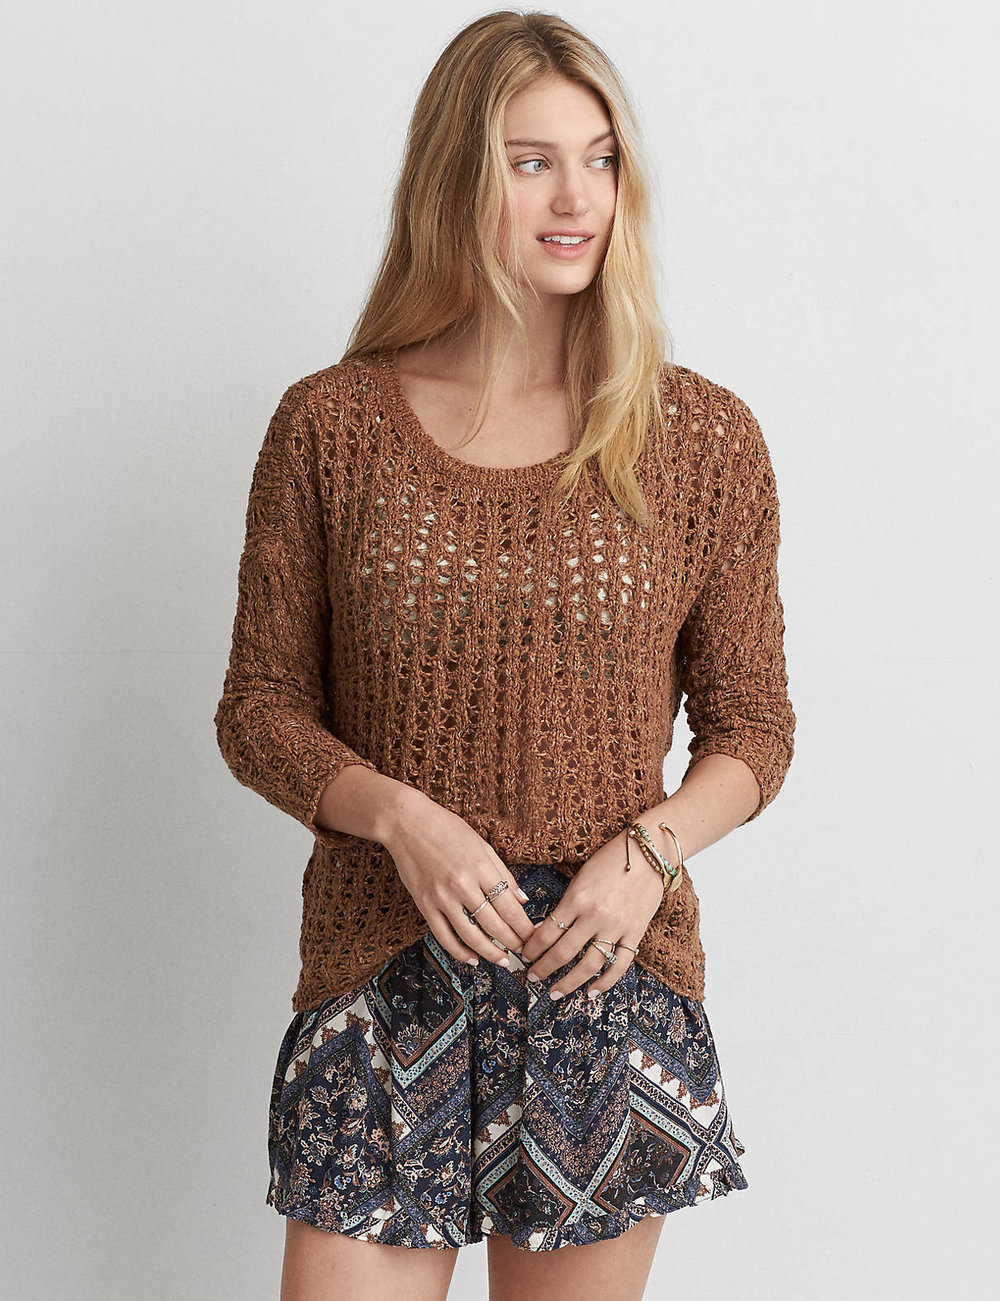 AEO OPEN KNIT SWEATER $44.95